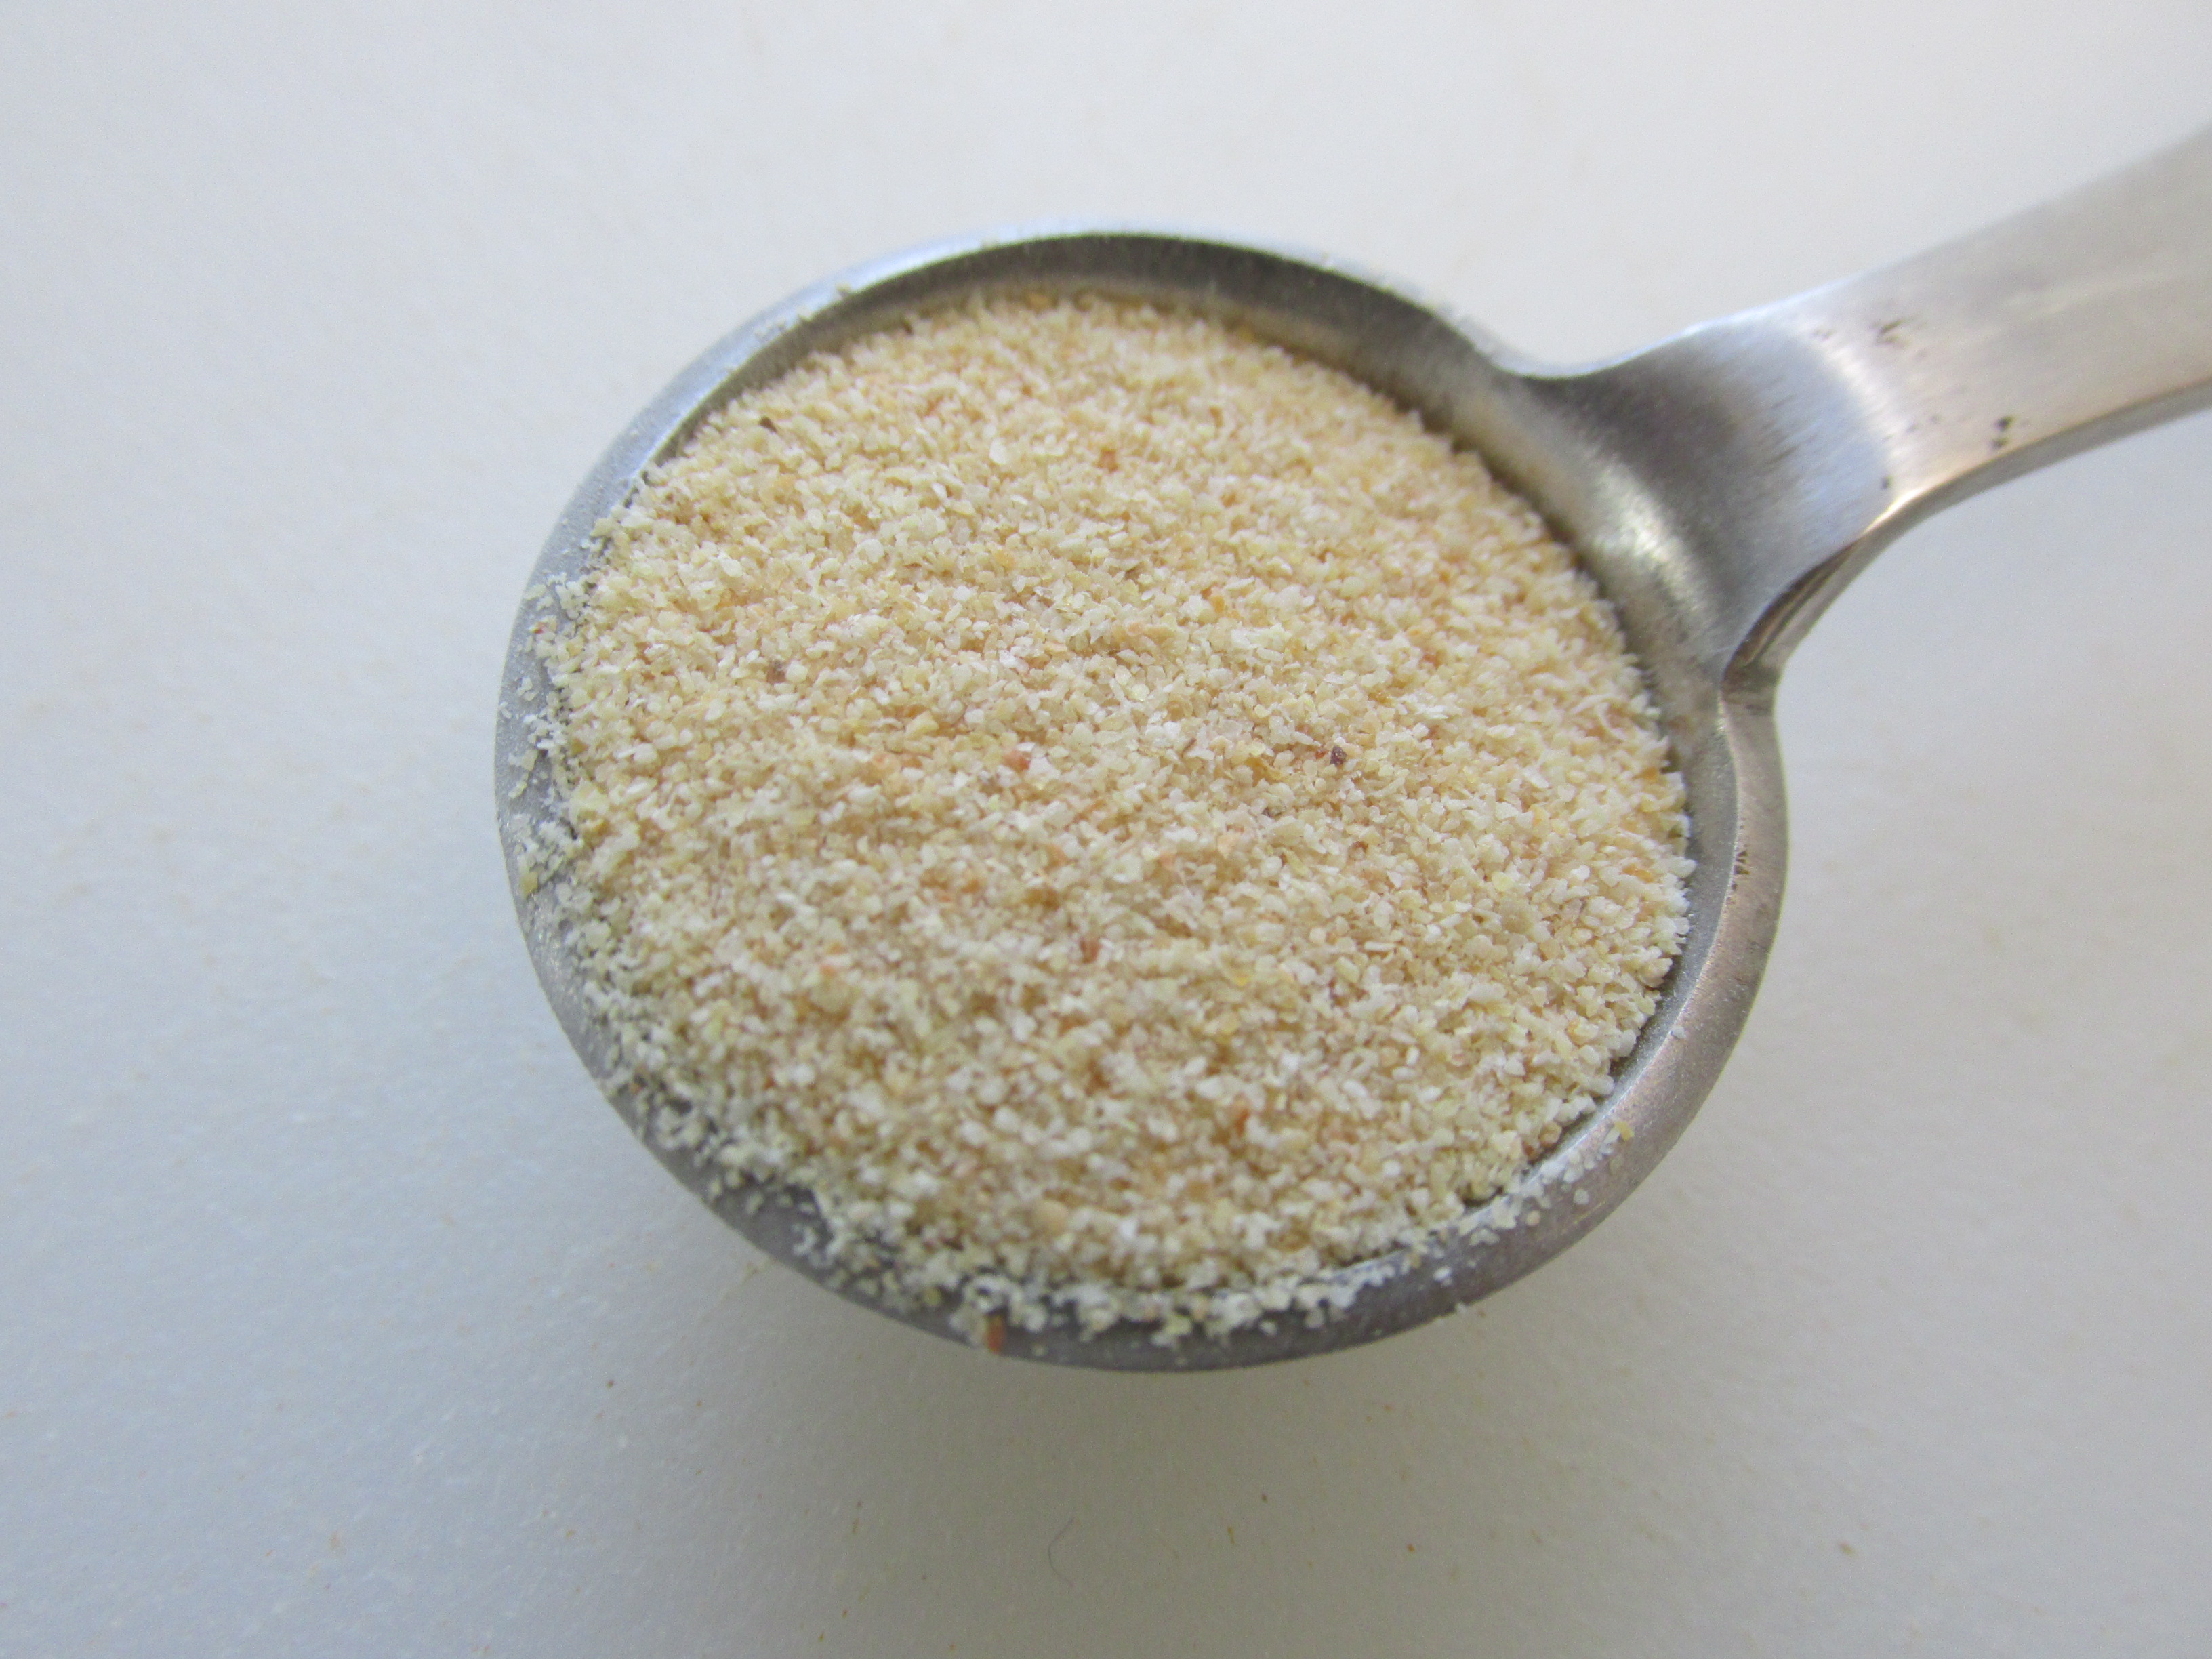 Garlic Powder Penzeys Spices Arlington Heights MA Beaufort Health and Fitness: 8 Essential Household Remedies